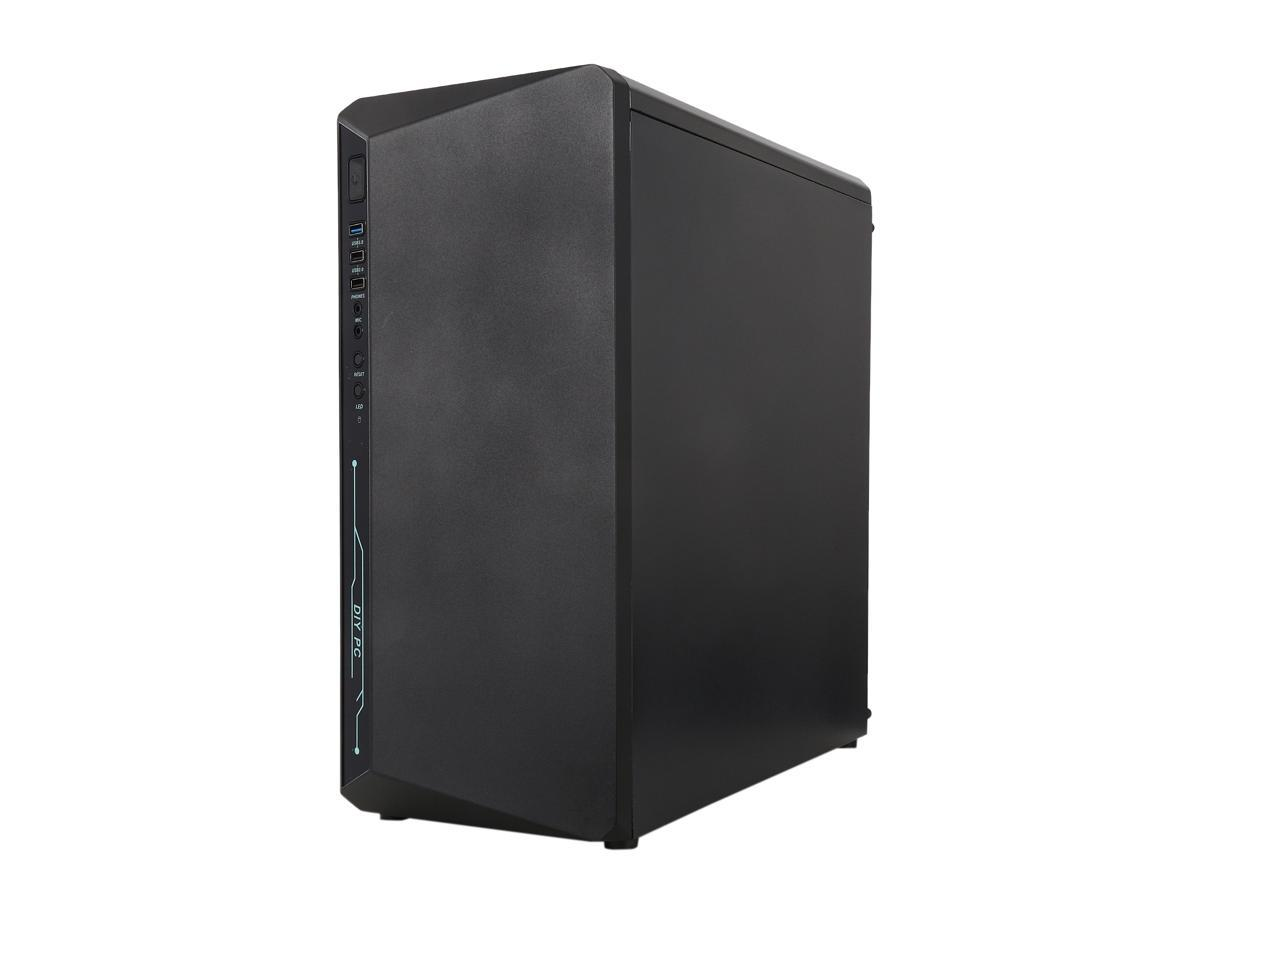 DIYPC ATX Mid Tower Computer Case